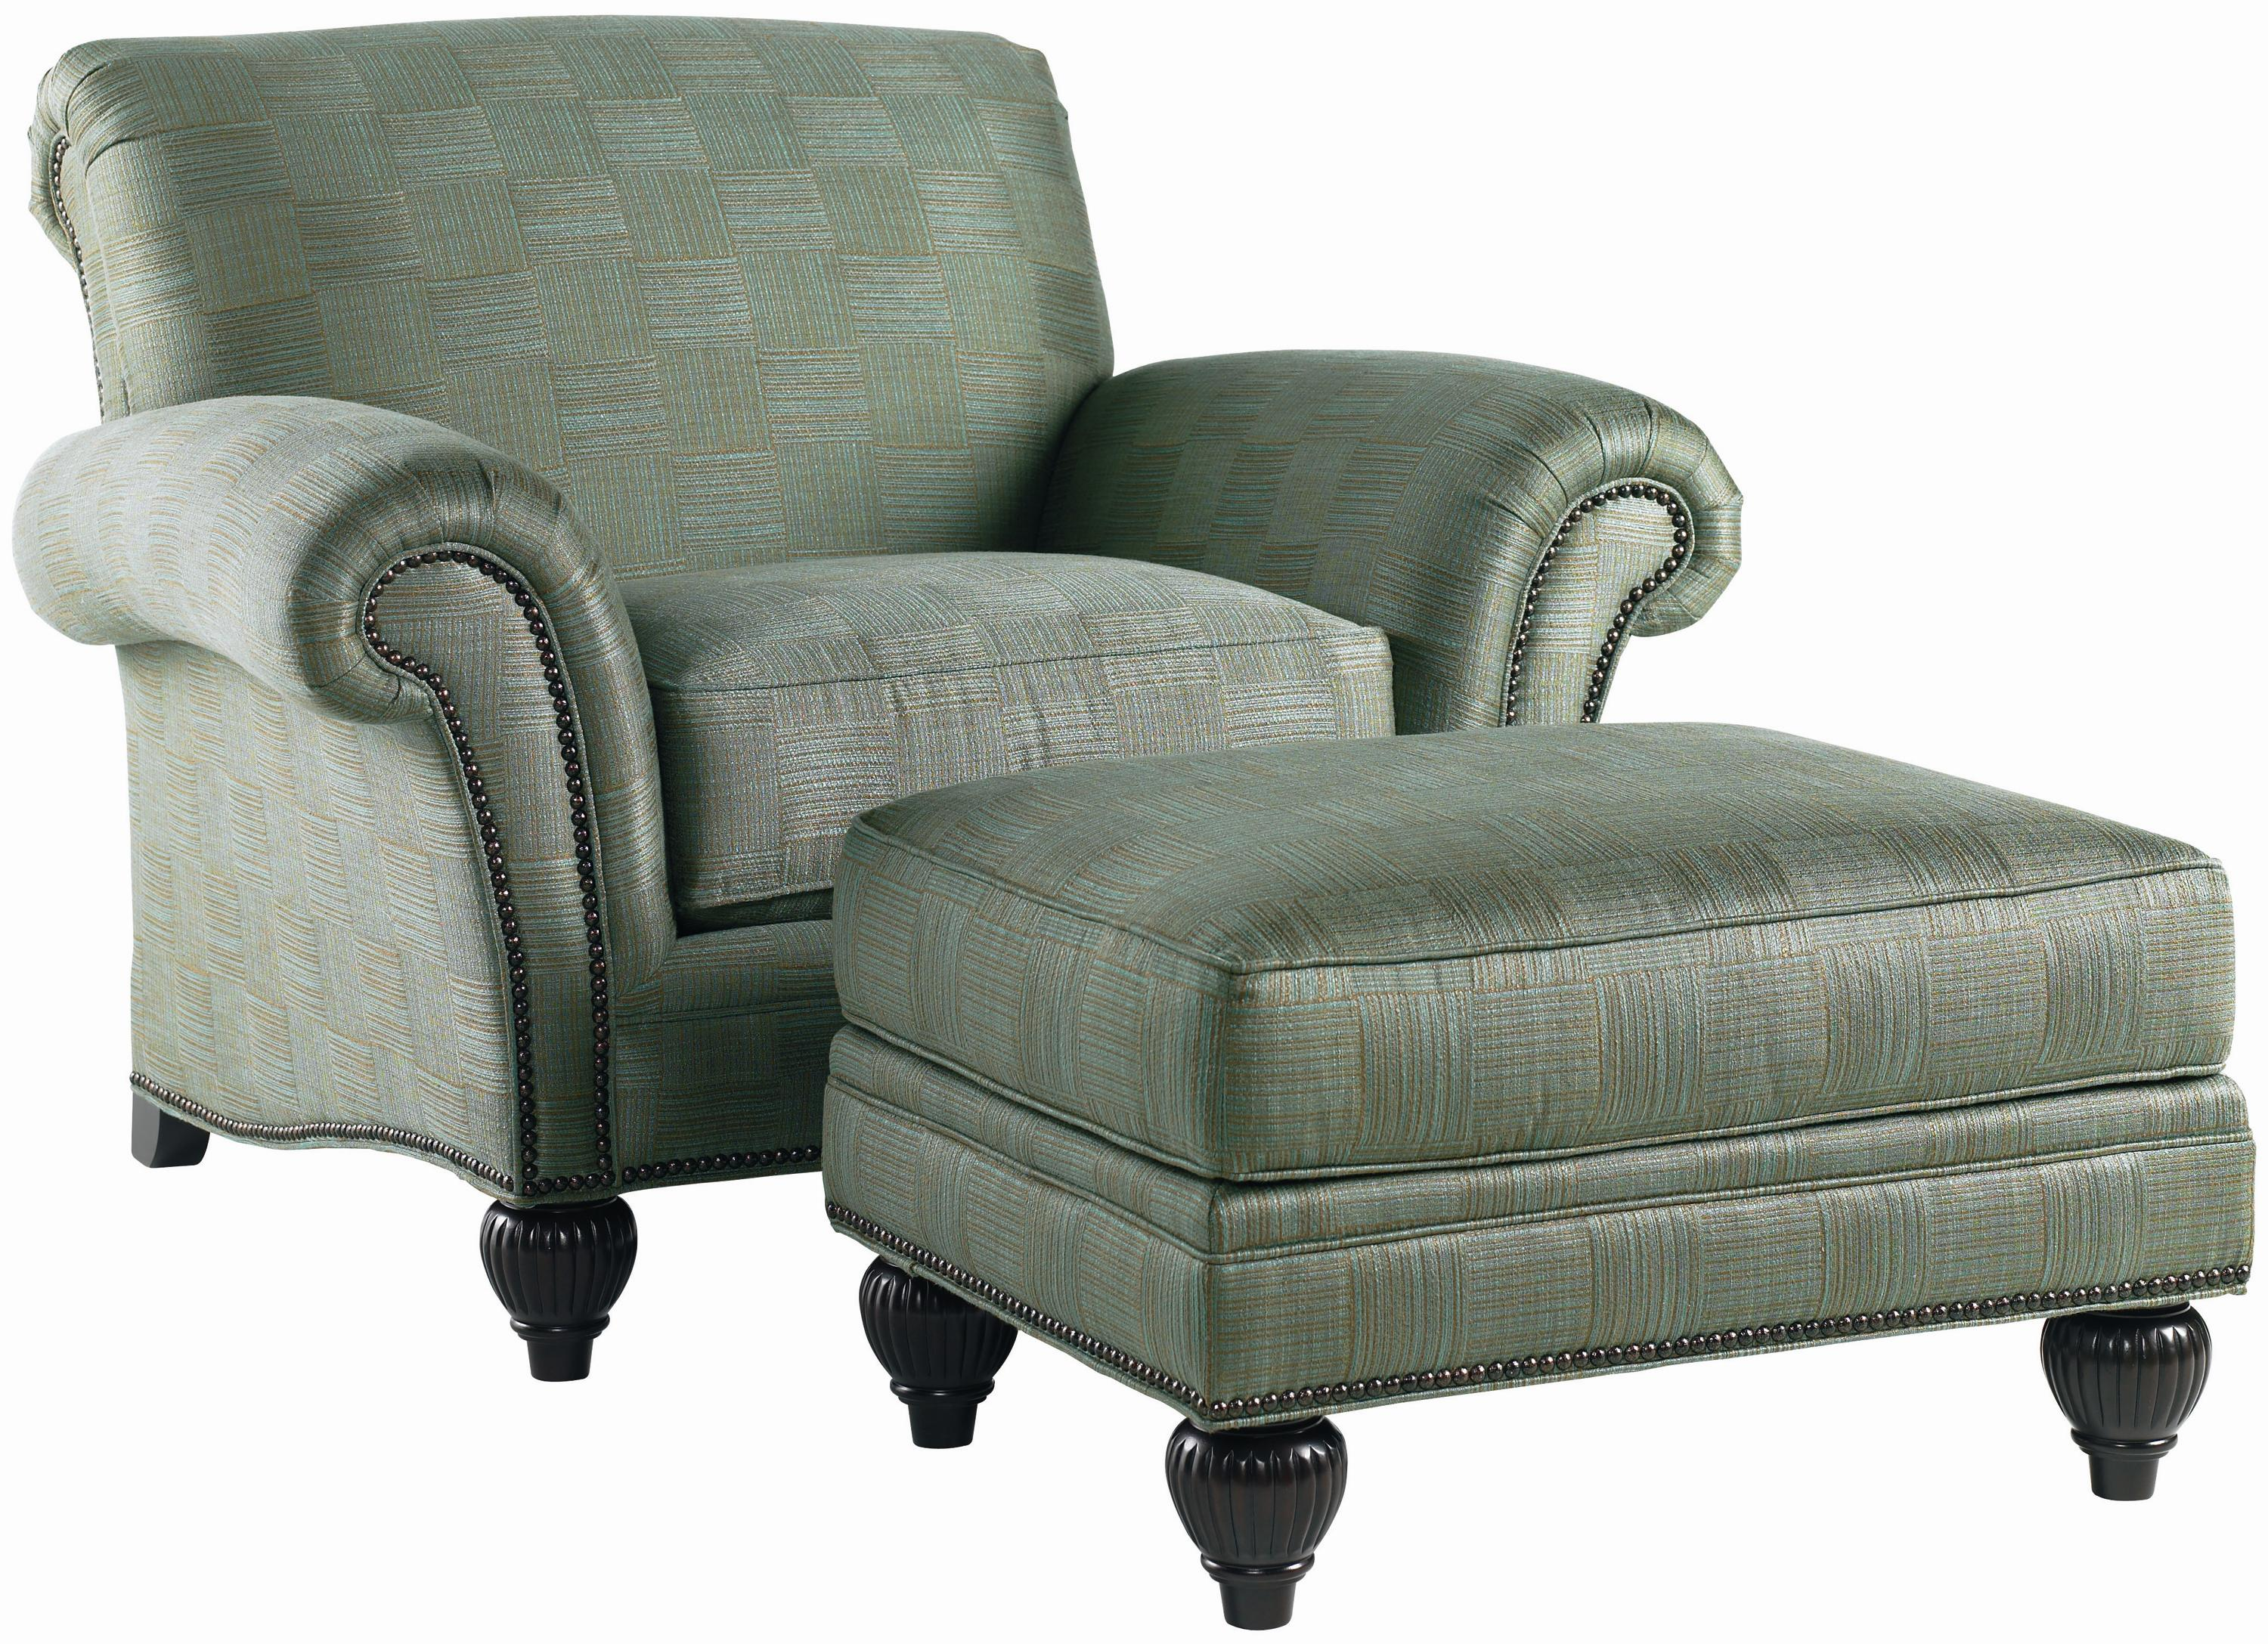 Royal Kahala Edgewater Chair & Ottoman by Tommy Bahama Home at Baer's Furniture